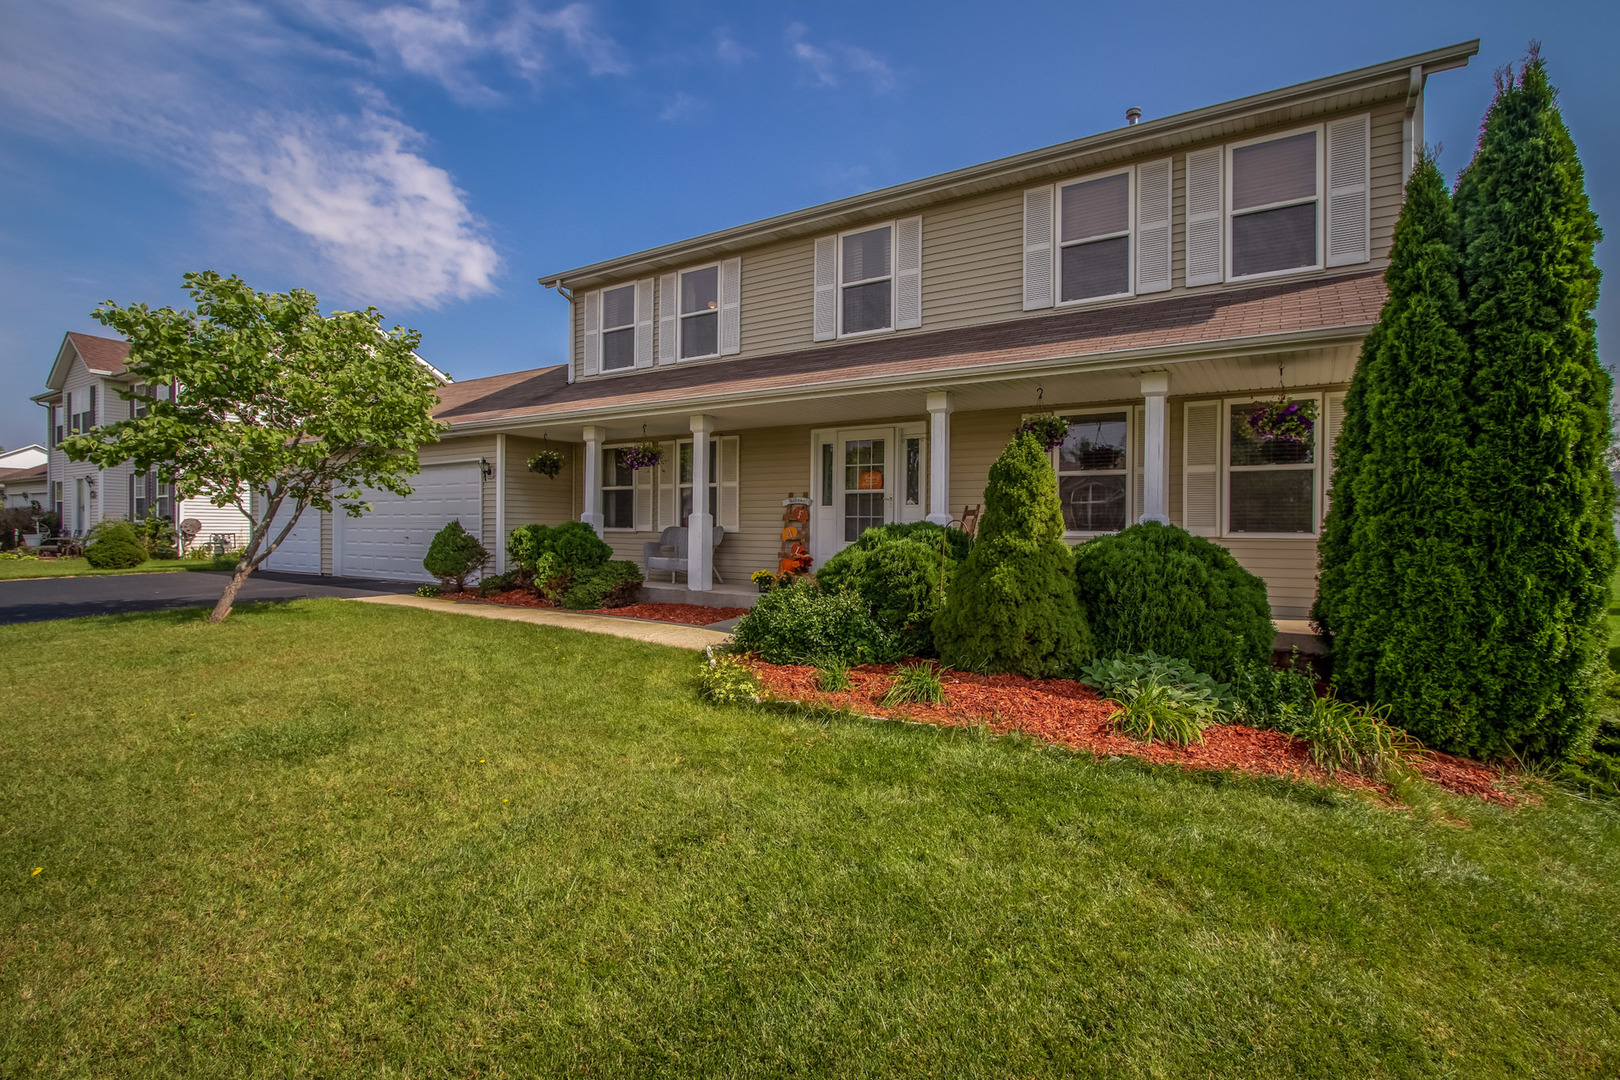 Photo for 11089 Linden Blossom Lane, Roscoe, IL 61073 (MLS # 10487255)